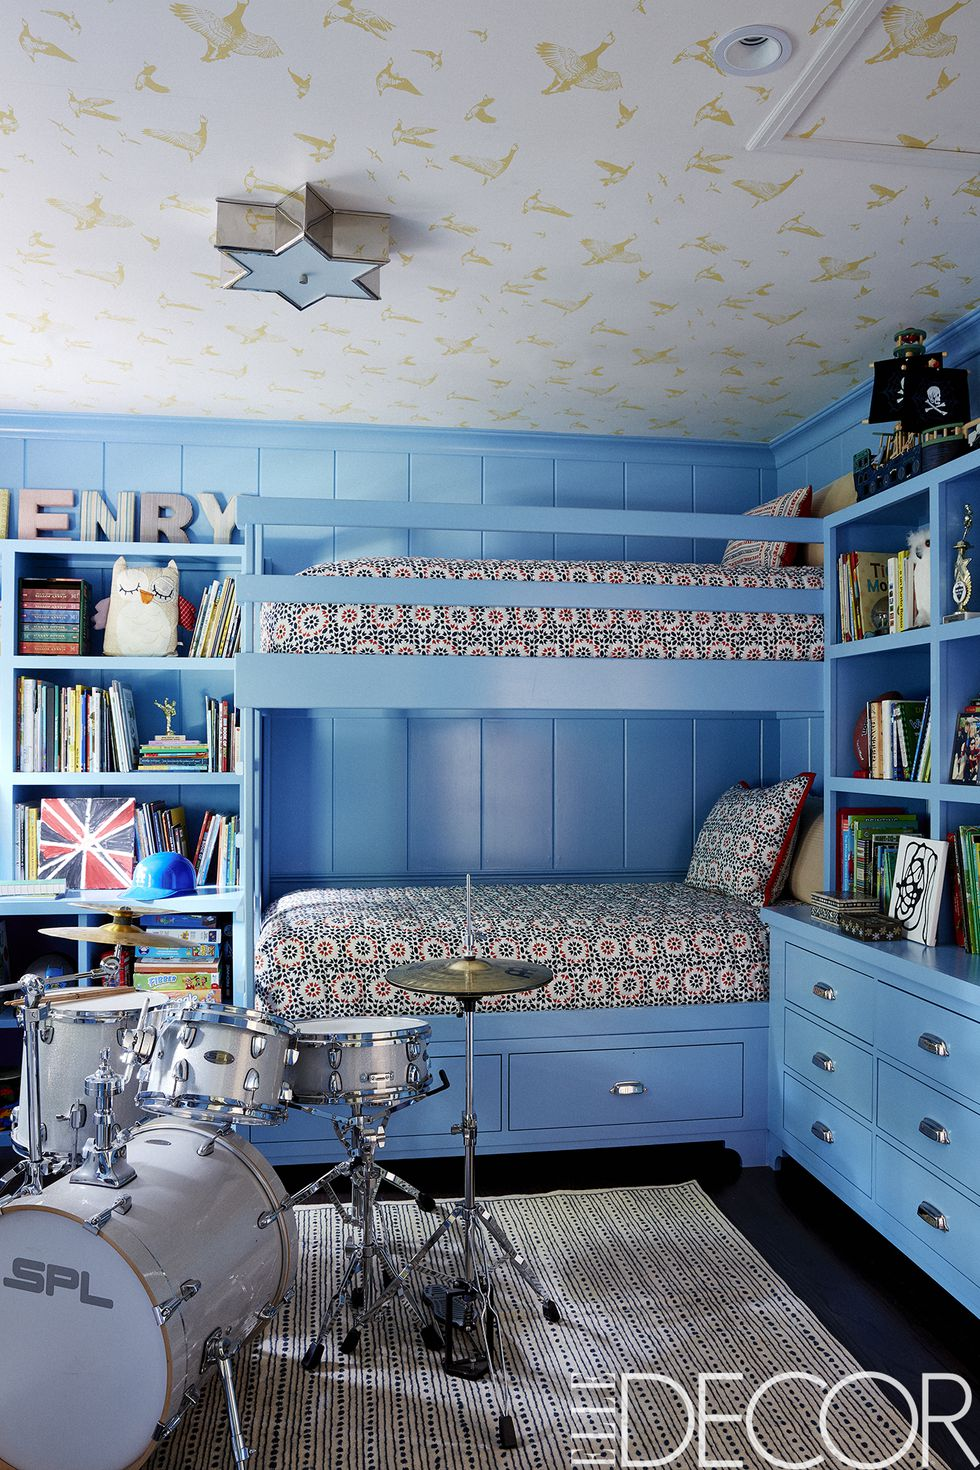 In Driver's son's bedroom, the bunk beds and cabinetry are painted in    Benjamin Moore's Poolside    and the bedding is from    Driver's home collection for HSN   .